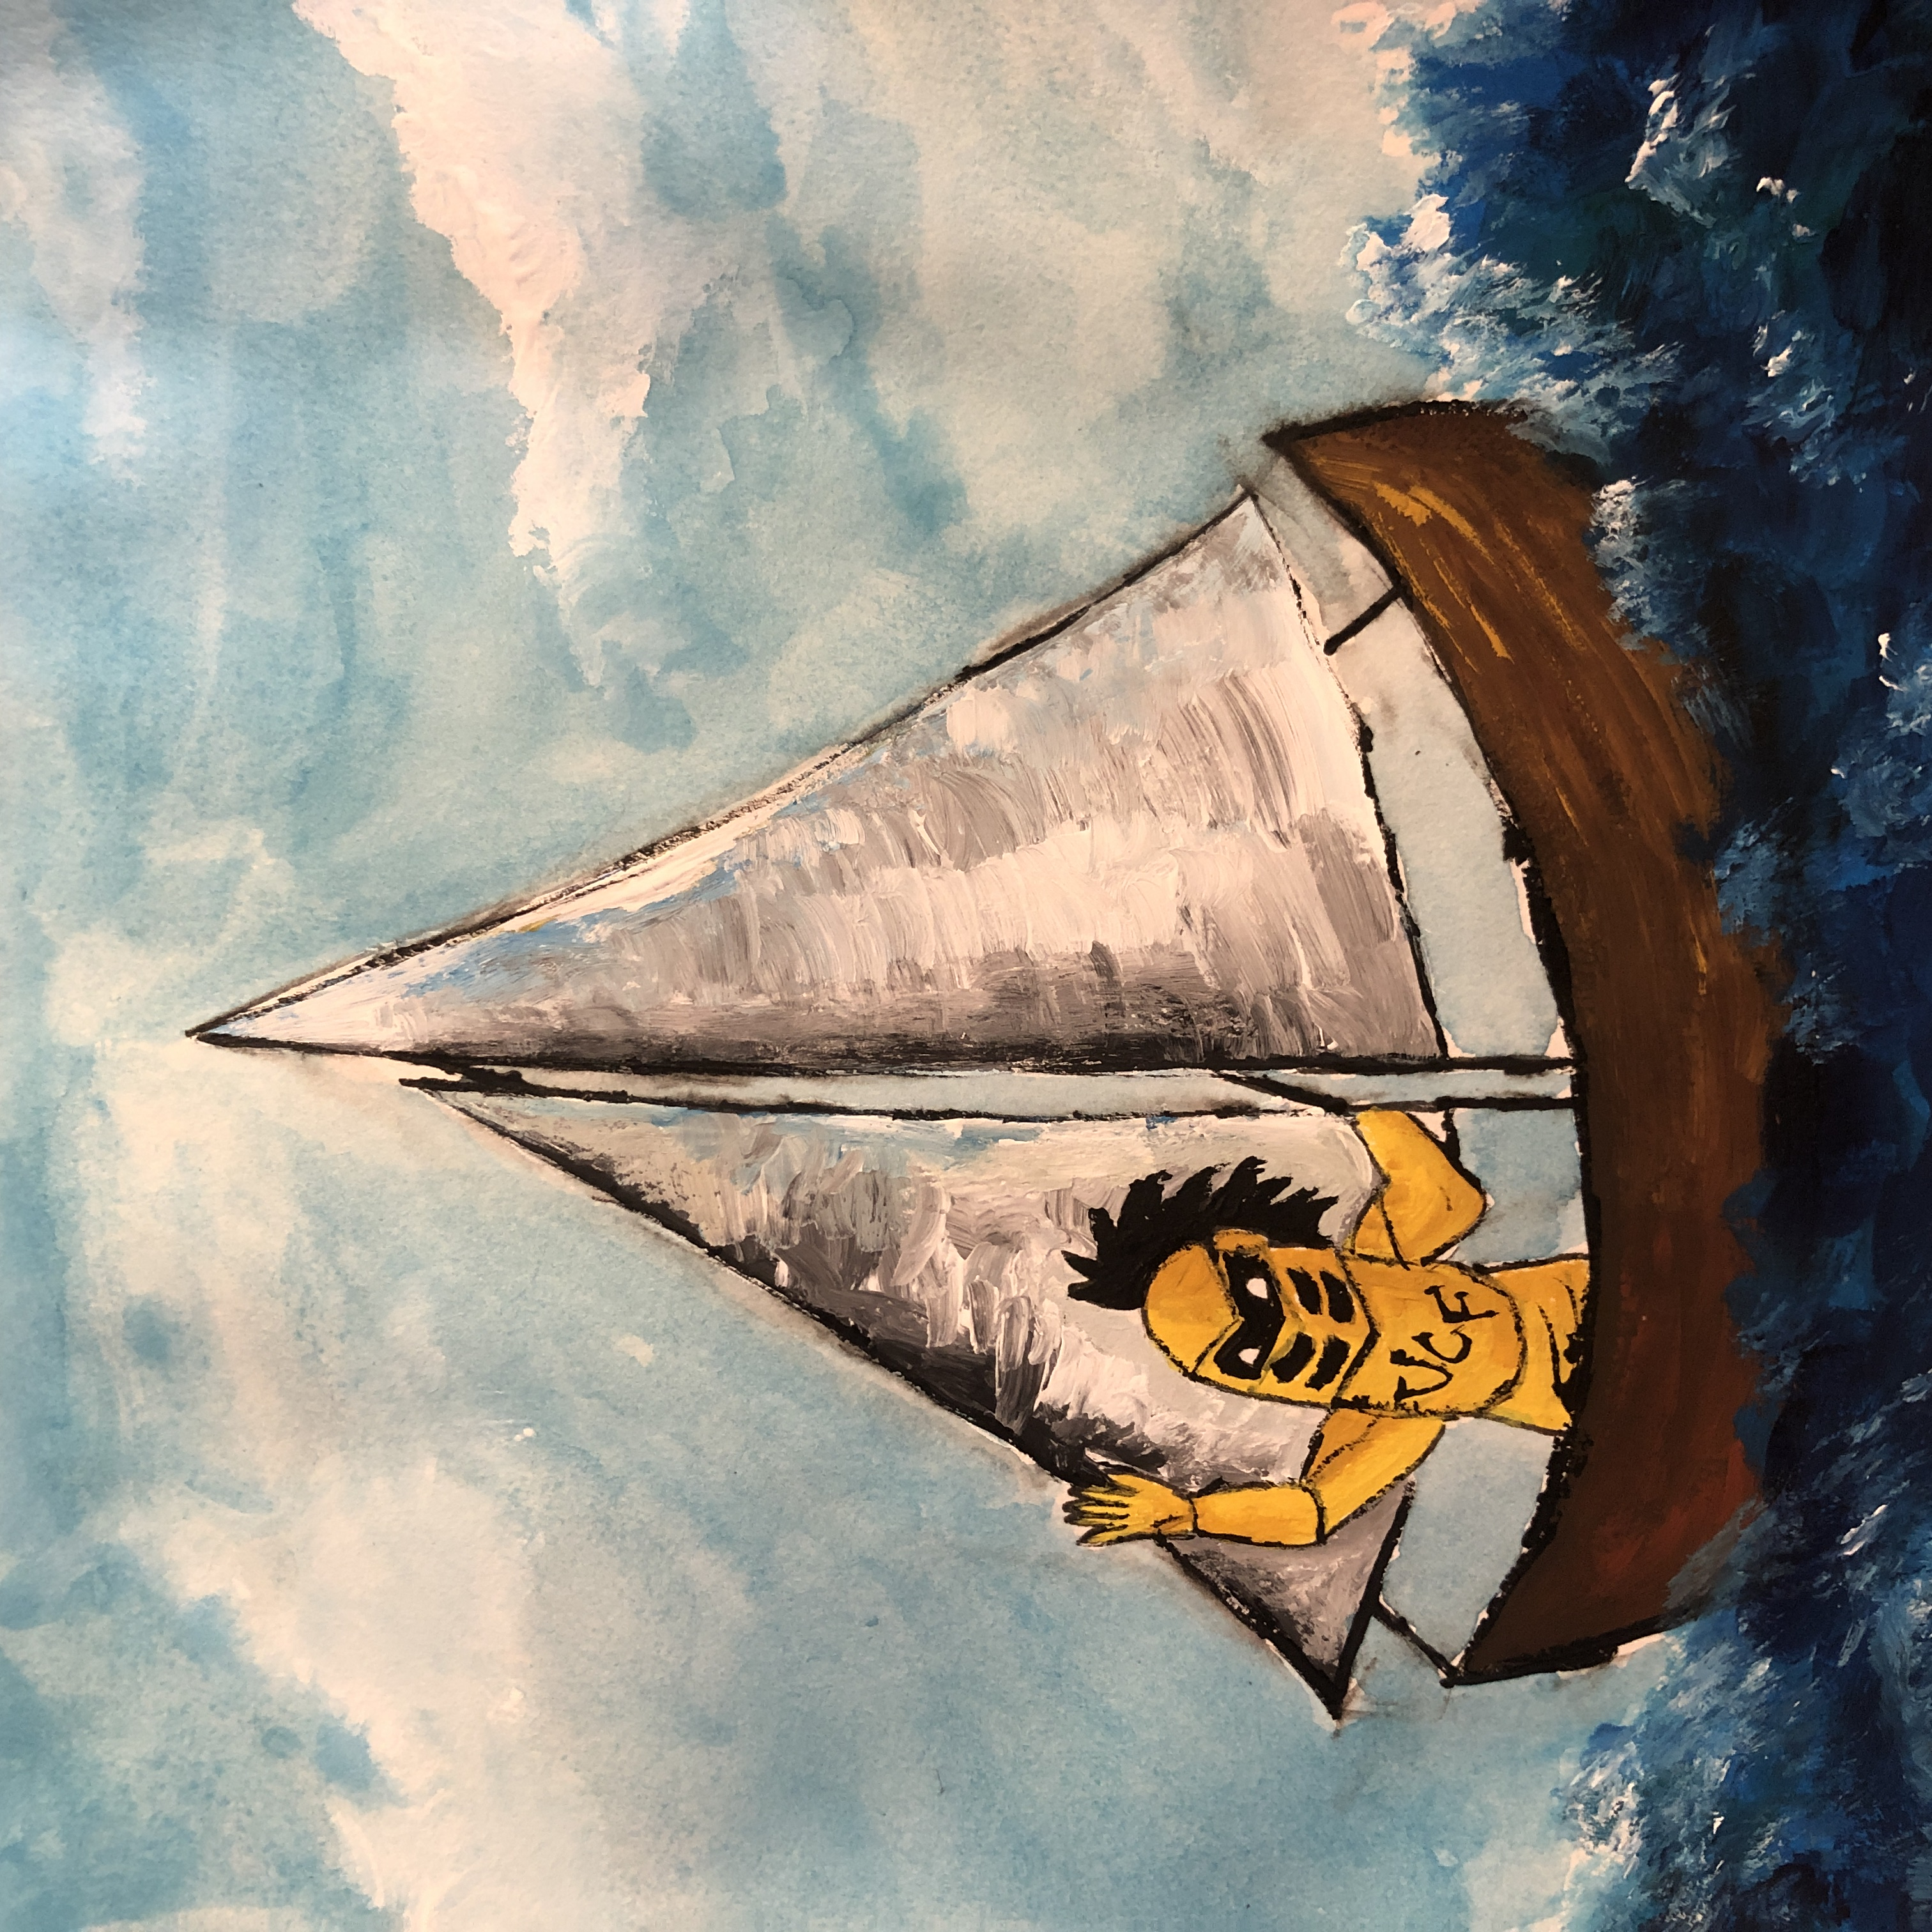 PD painting of knightro in a sailboat